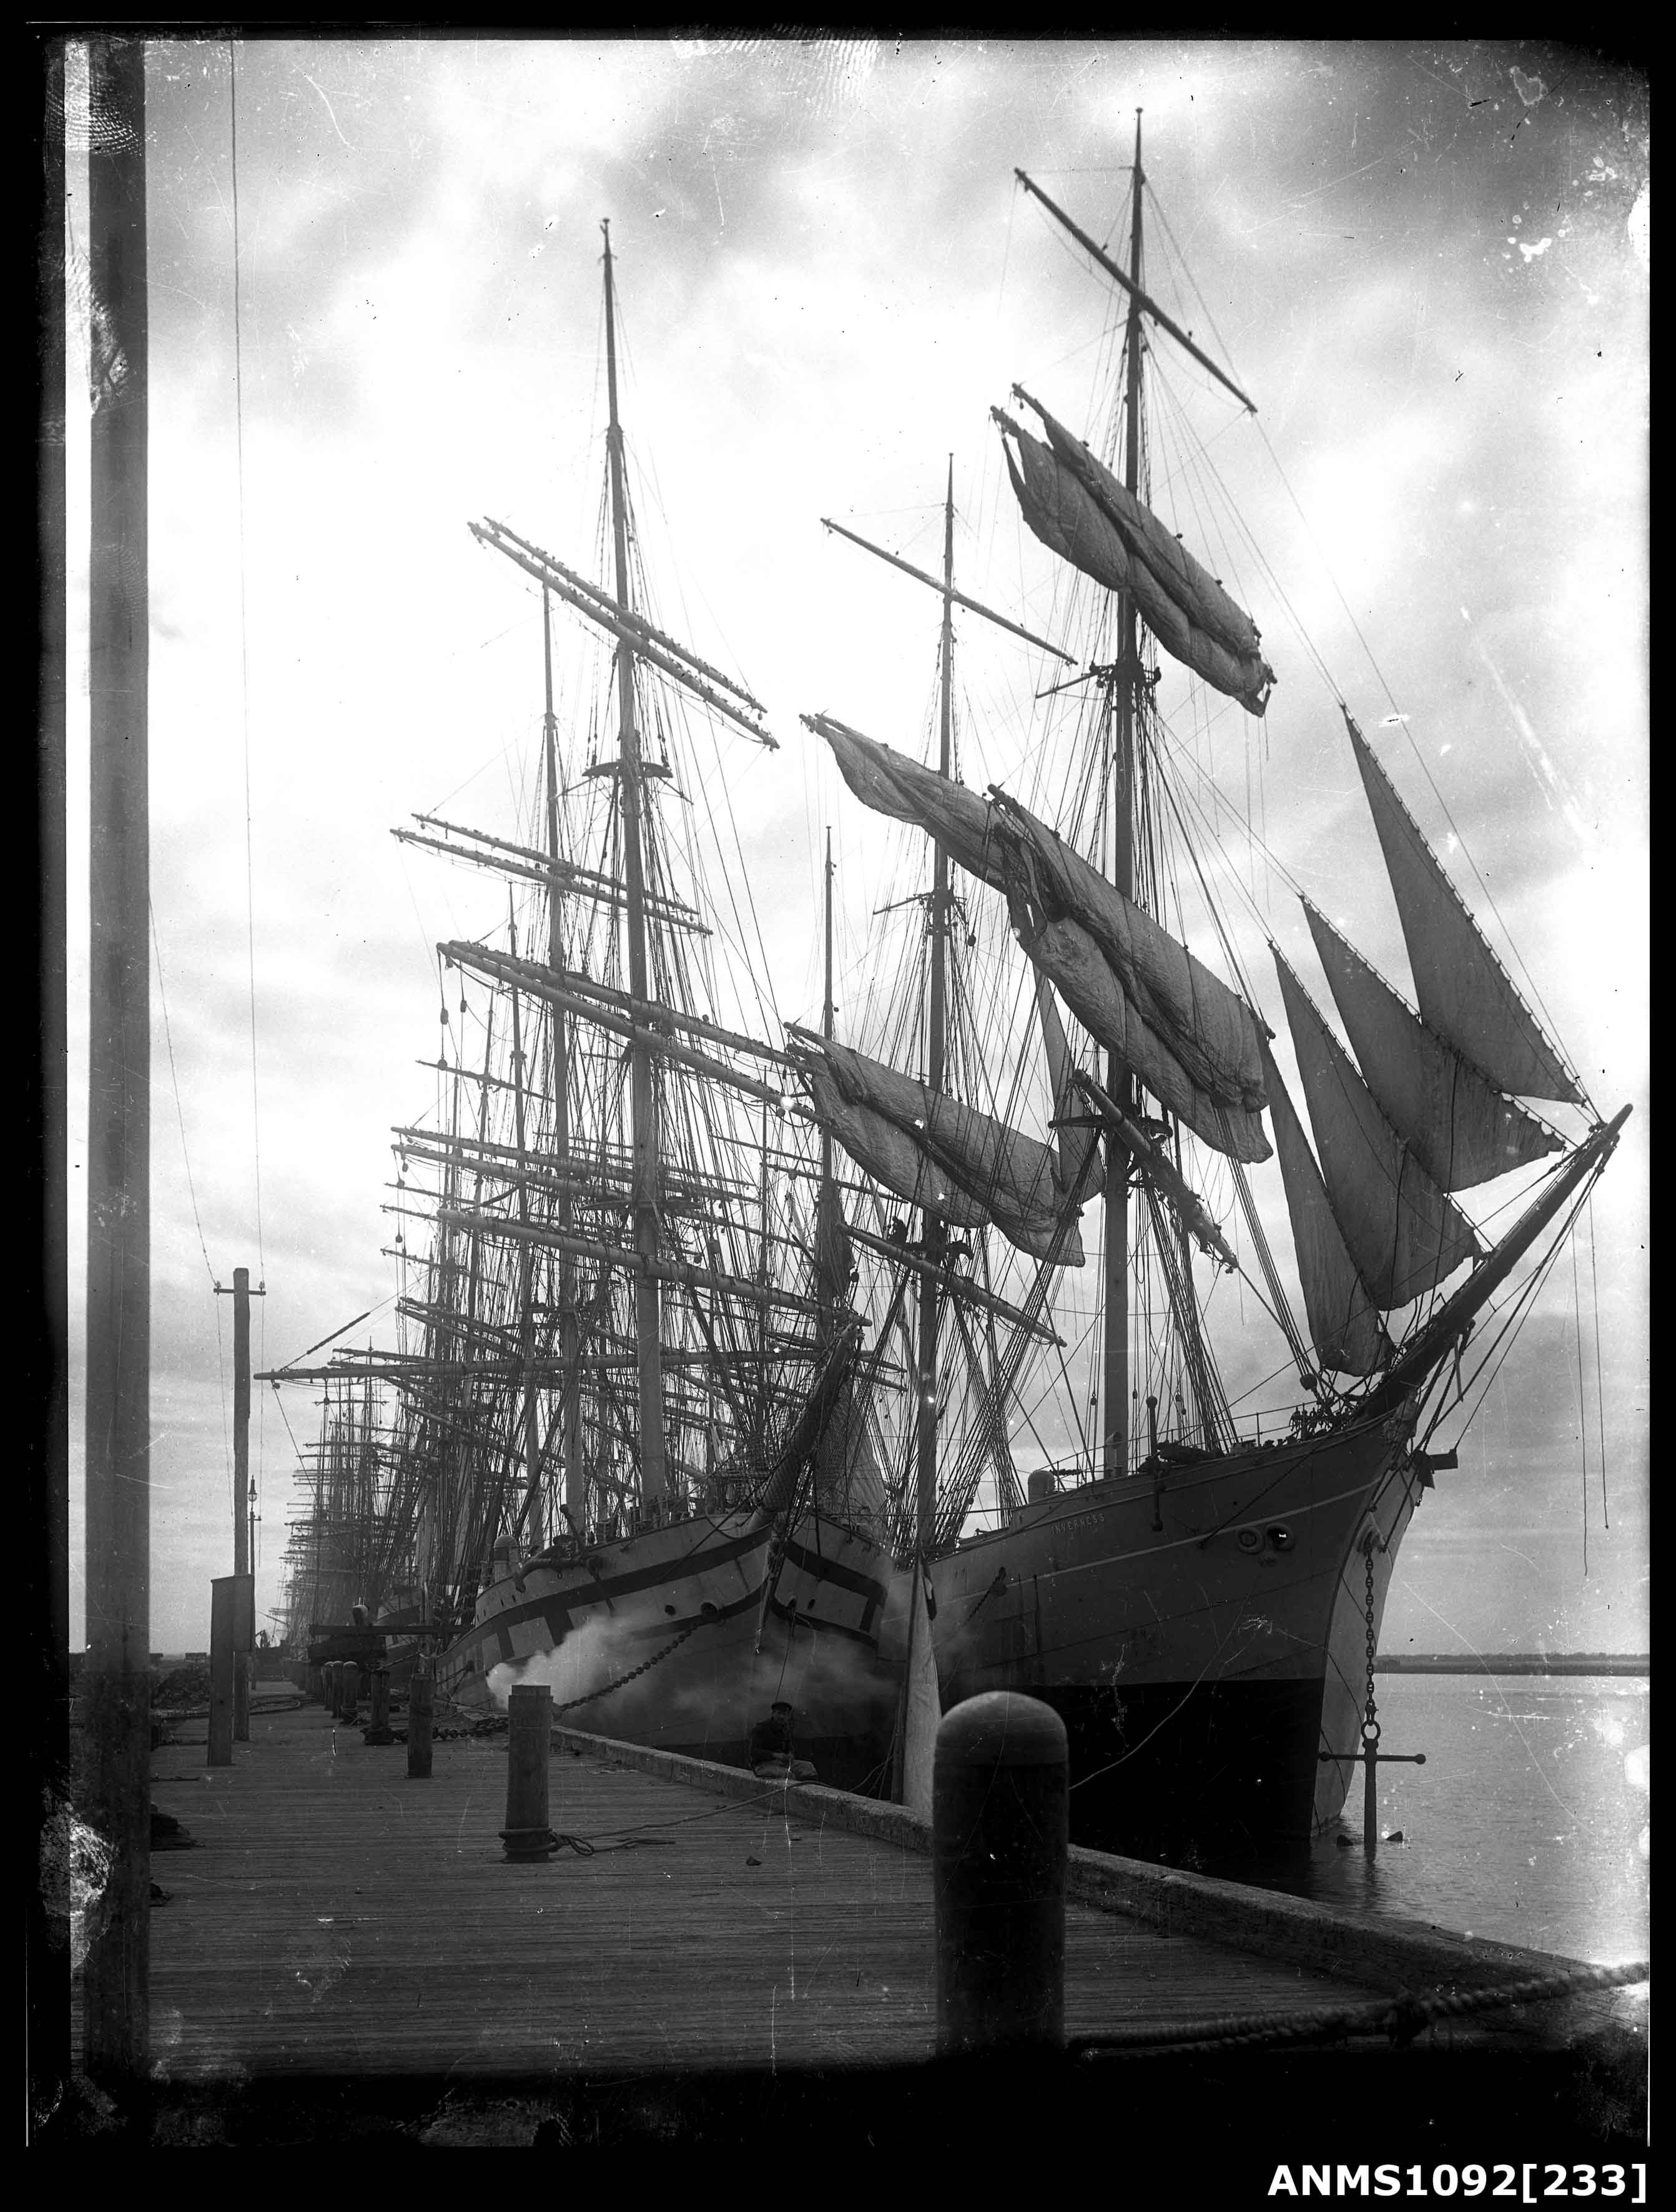 Square rigged sailing ships, including INVERNESS, moored at a wharf